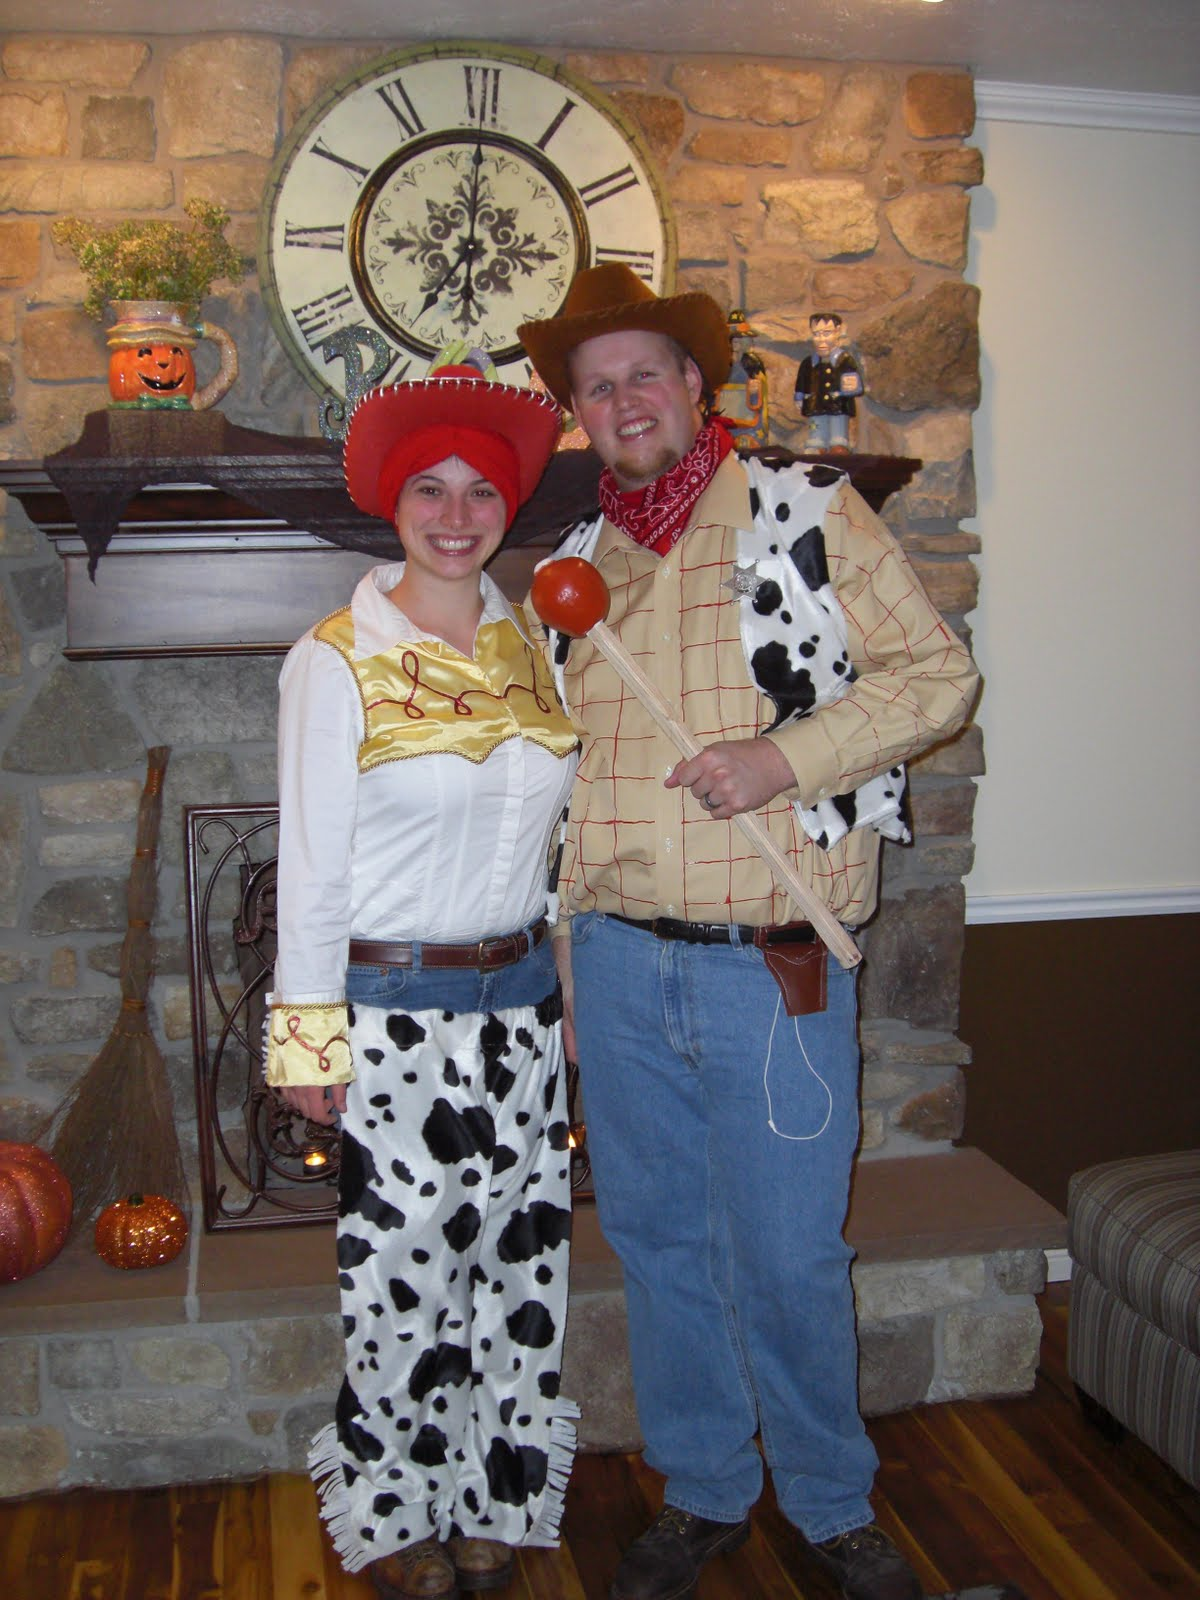 Jessie and Woody Costumes Homemade http://jessieandjon.blogspot.com/2010_11_01_archive.html